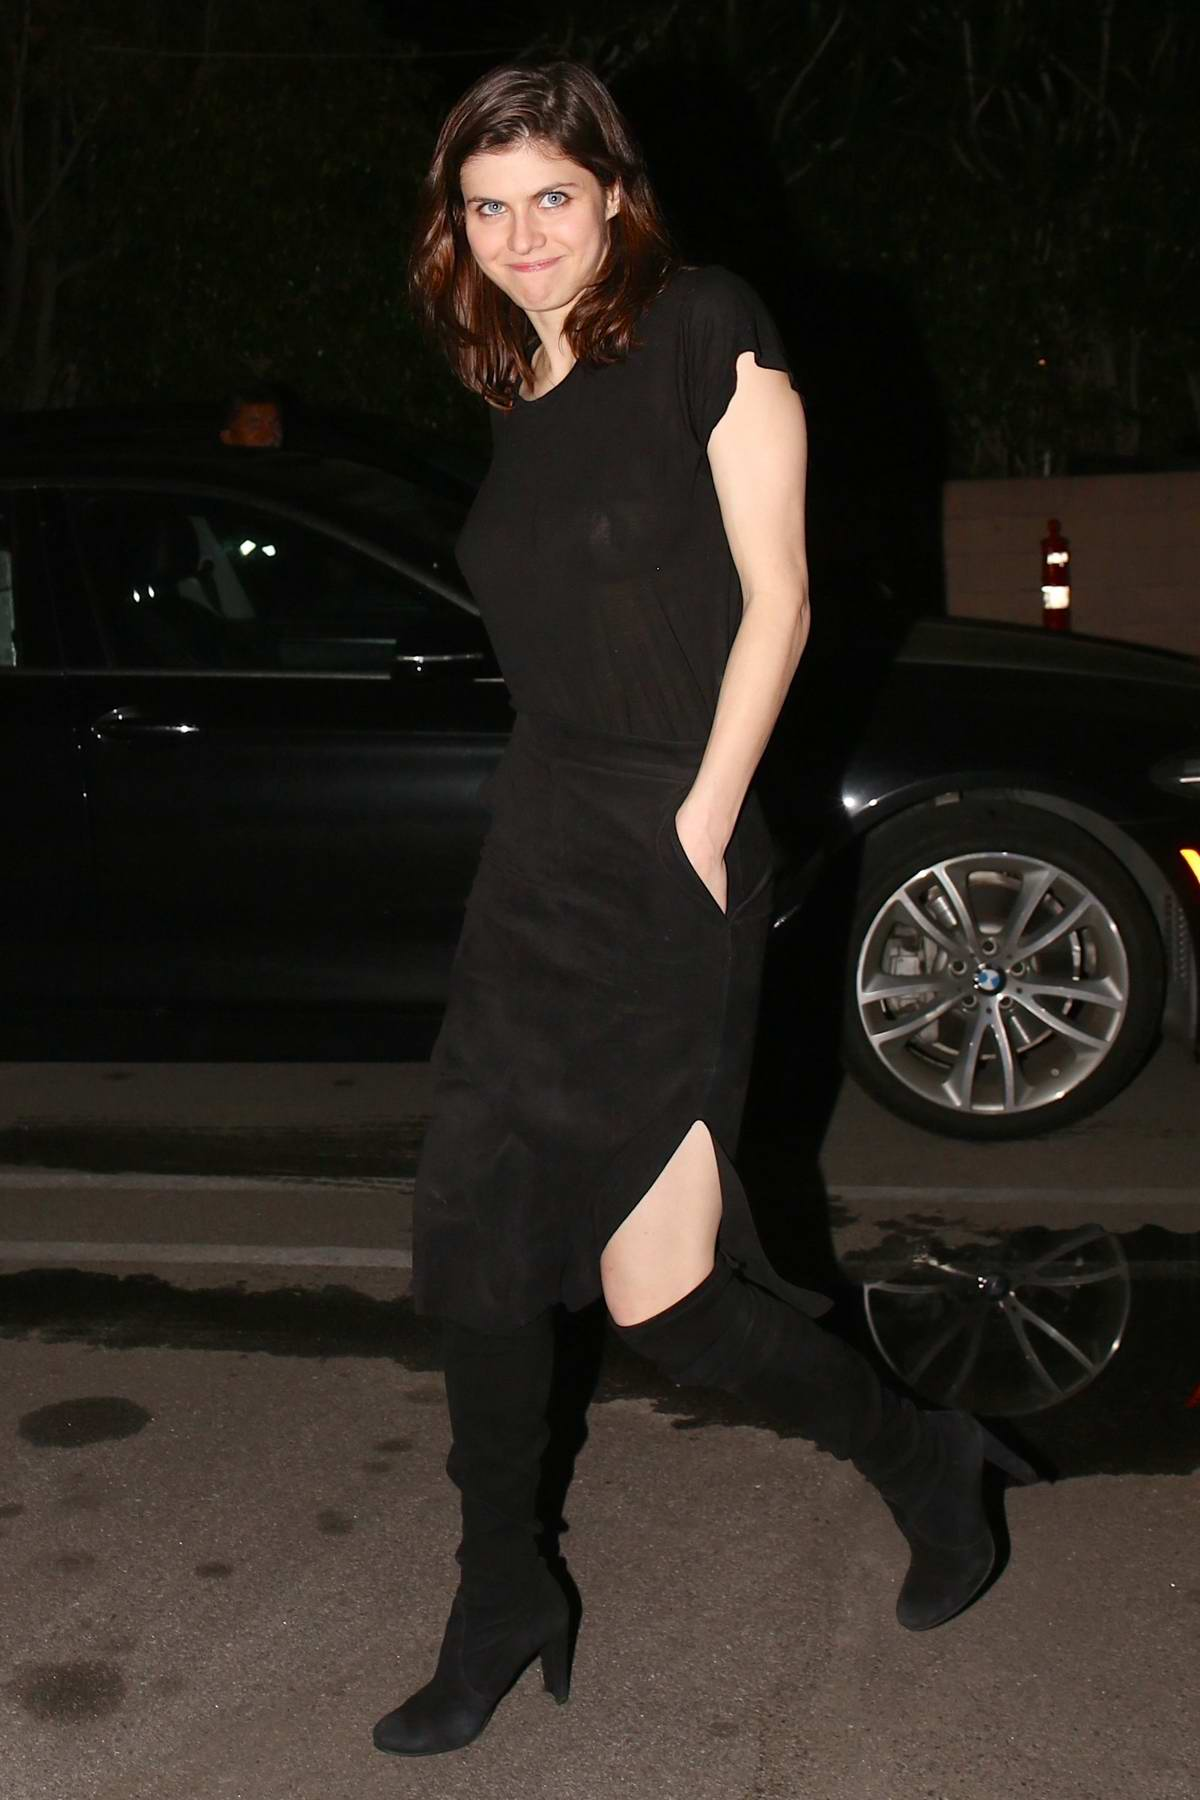 Alexandra Daddario wears a black dress while out for dinner with friends at Matsuhisa Sushi Restaurant in Beverly Hills, California